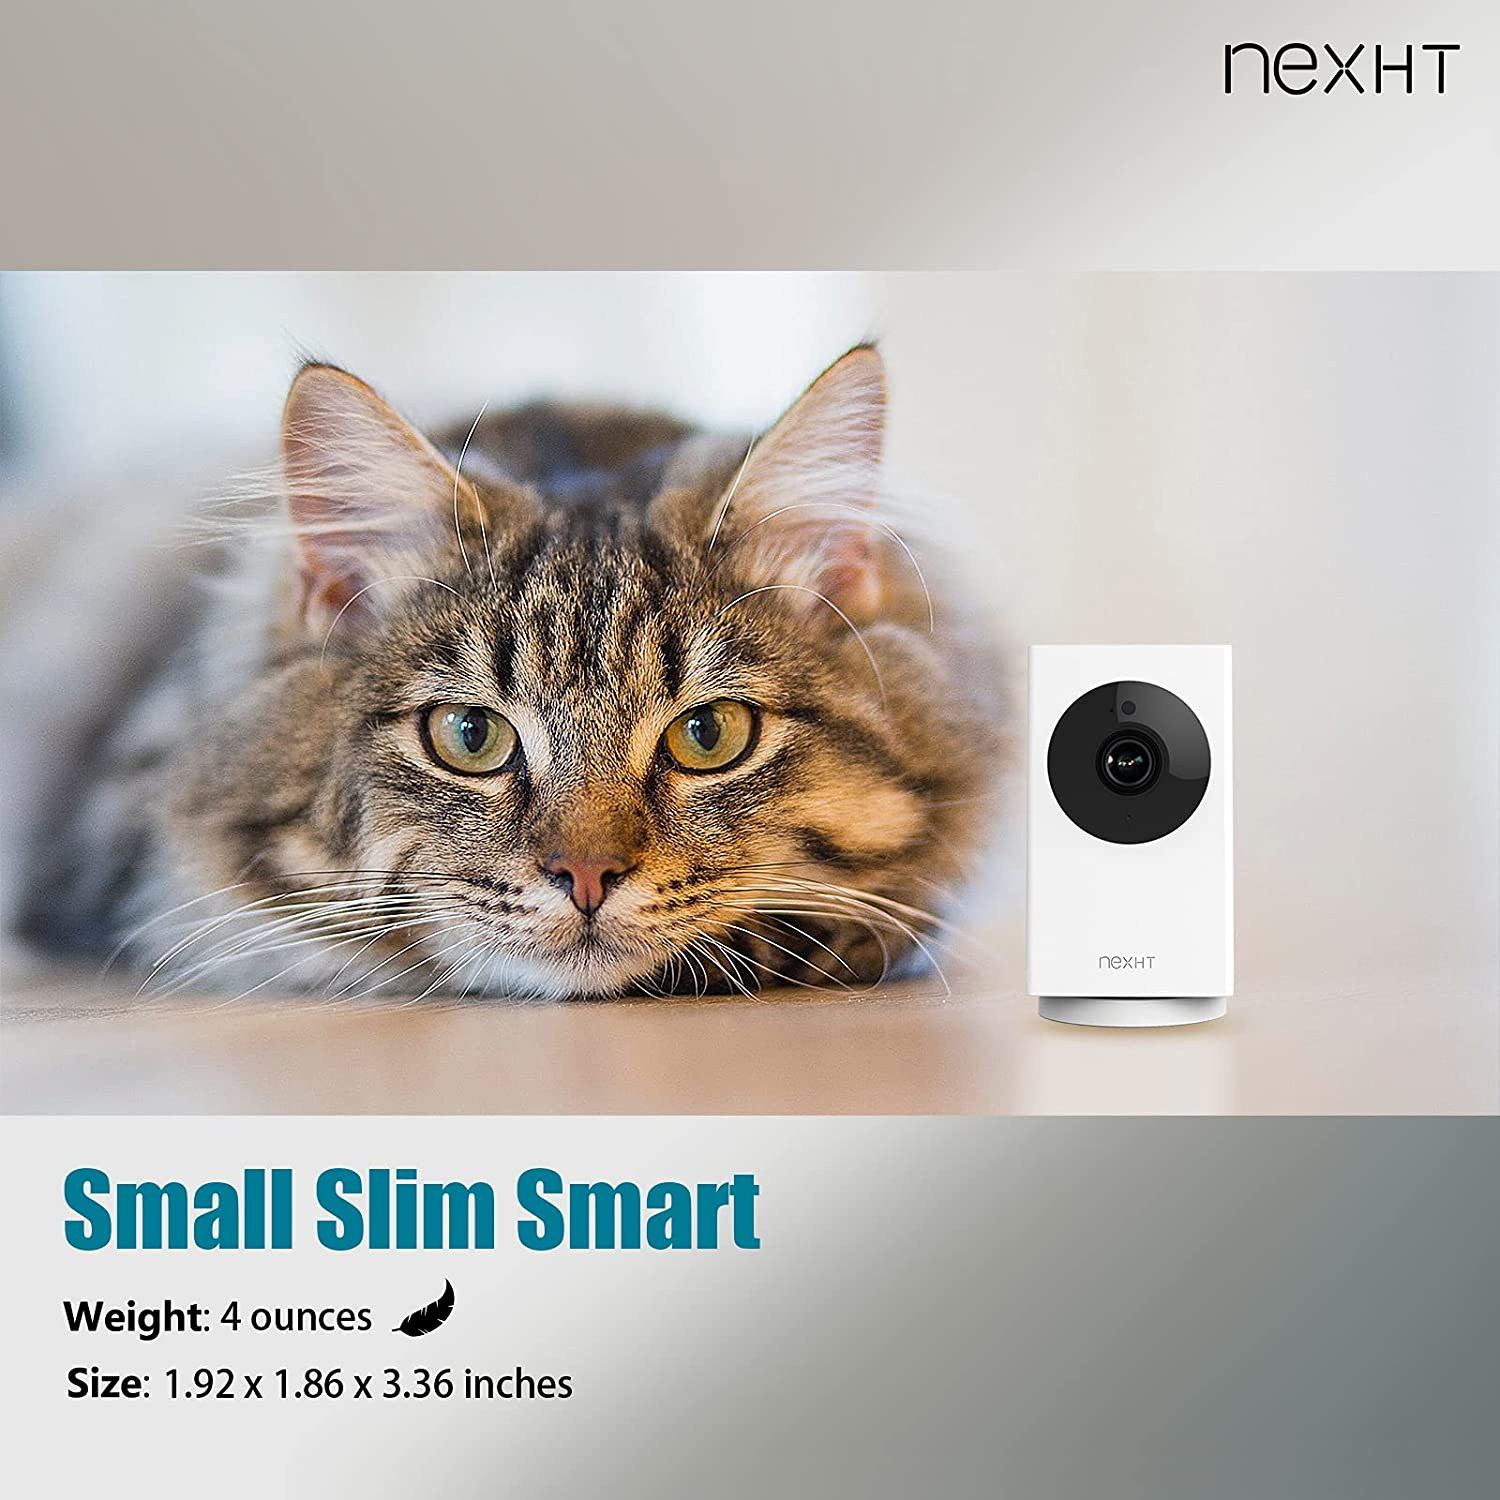 NexHT 1080P Pan Digital Tilt & Zoom Indoor Wi-Fi Camera for Baby, Pet Monitor with Night Vision, Motion Detection and 2-Way Audio Compatible with NexHT Home & IPC360 App